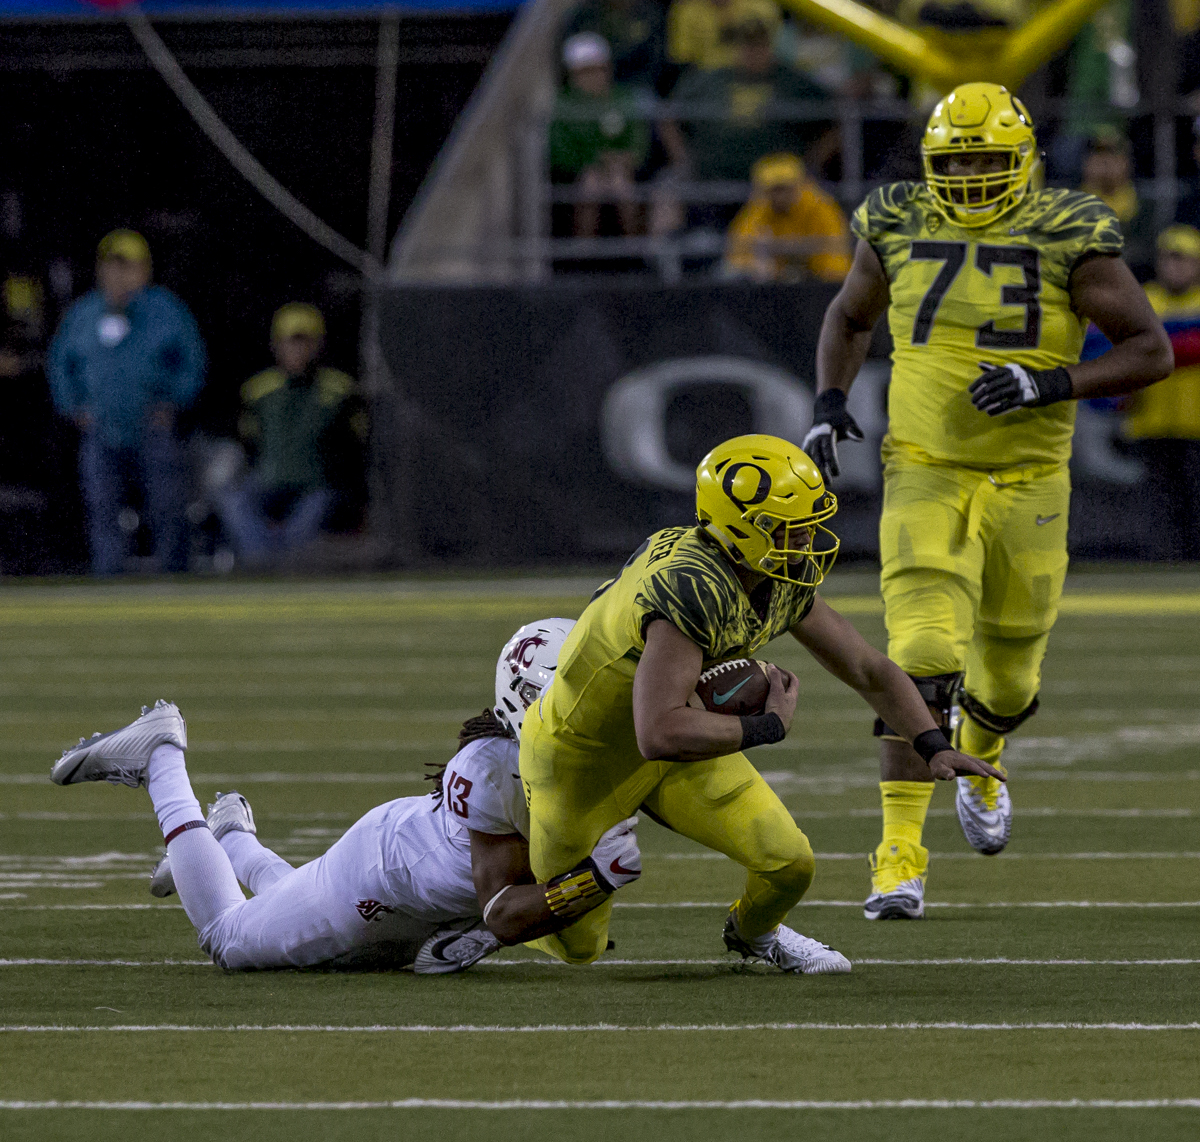 Oregon quarterback Braxton Burmeister (#11) carries the ball on a quarterback keeper. The Oregon Ducks trail the Washington State Cougars 10 to 13 at the end of the first half. Photo by Ben Lonergan, Oregon News Lab